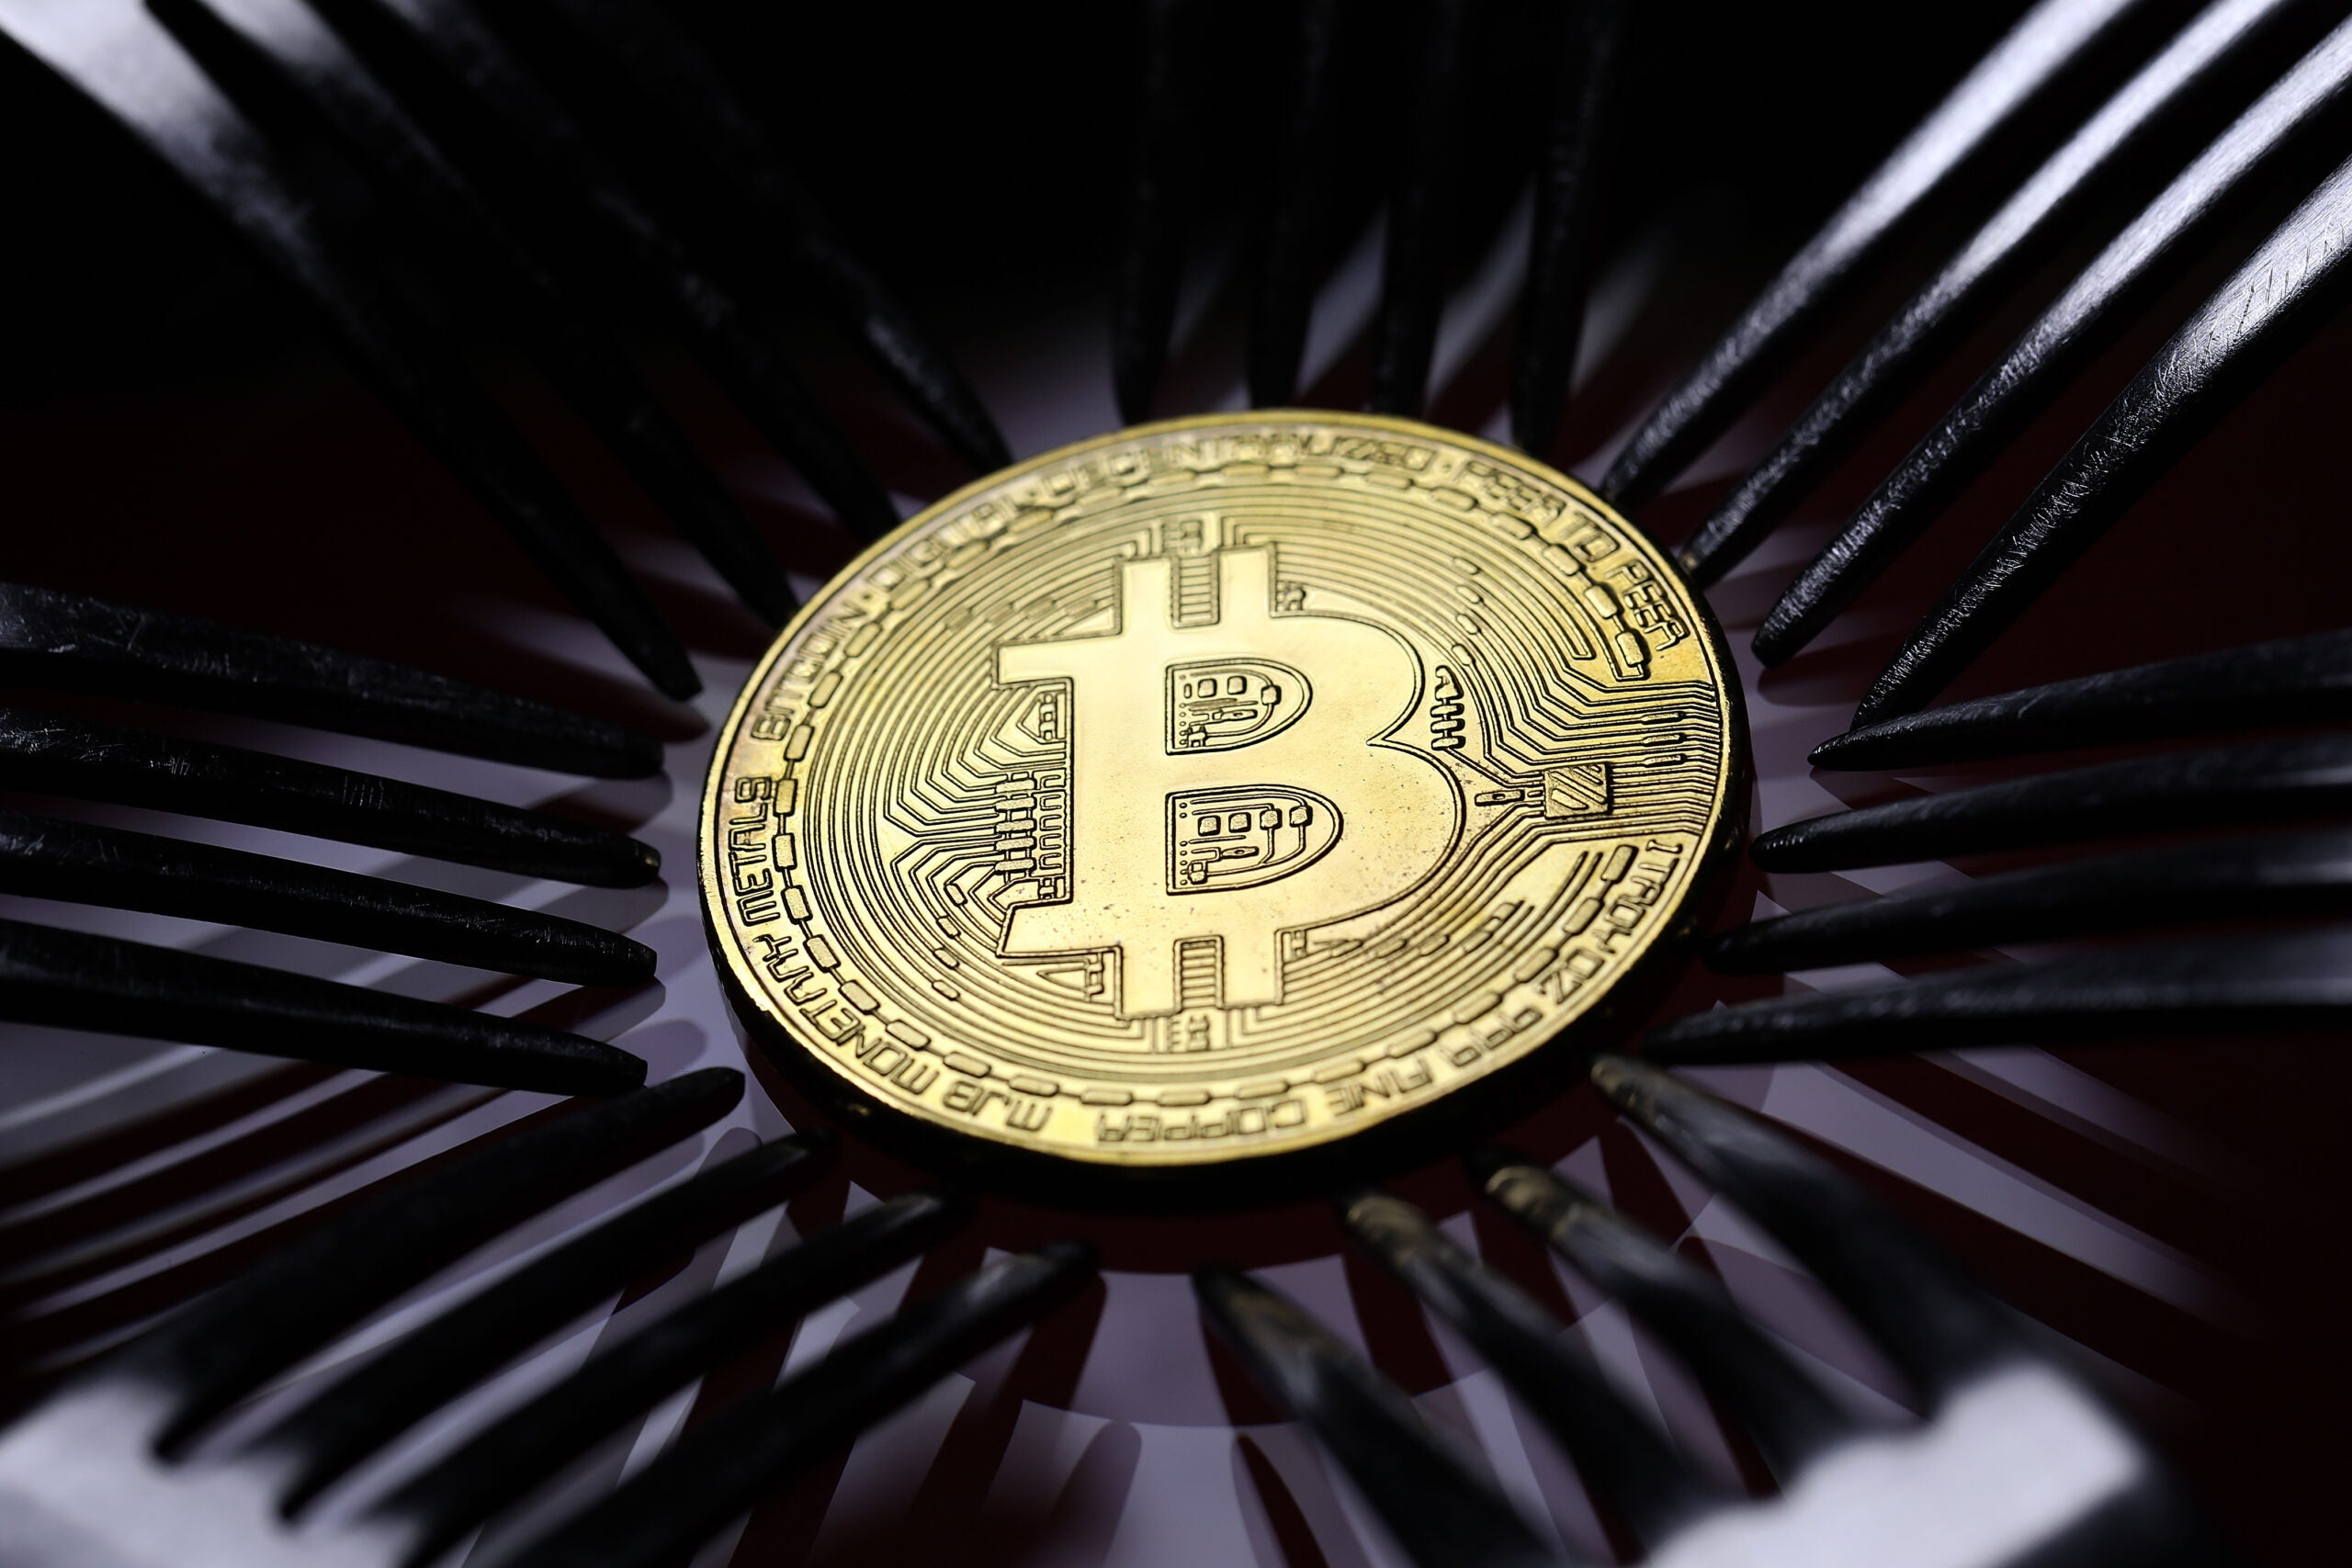 Bitcoin consumes more electricity than Sweden and Ukraine